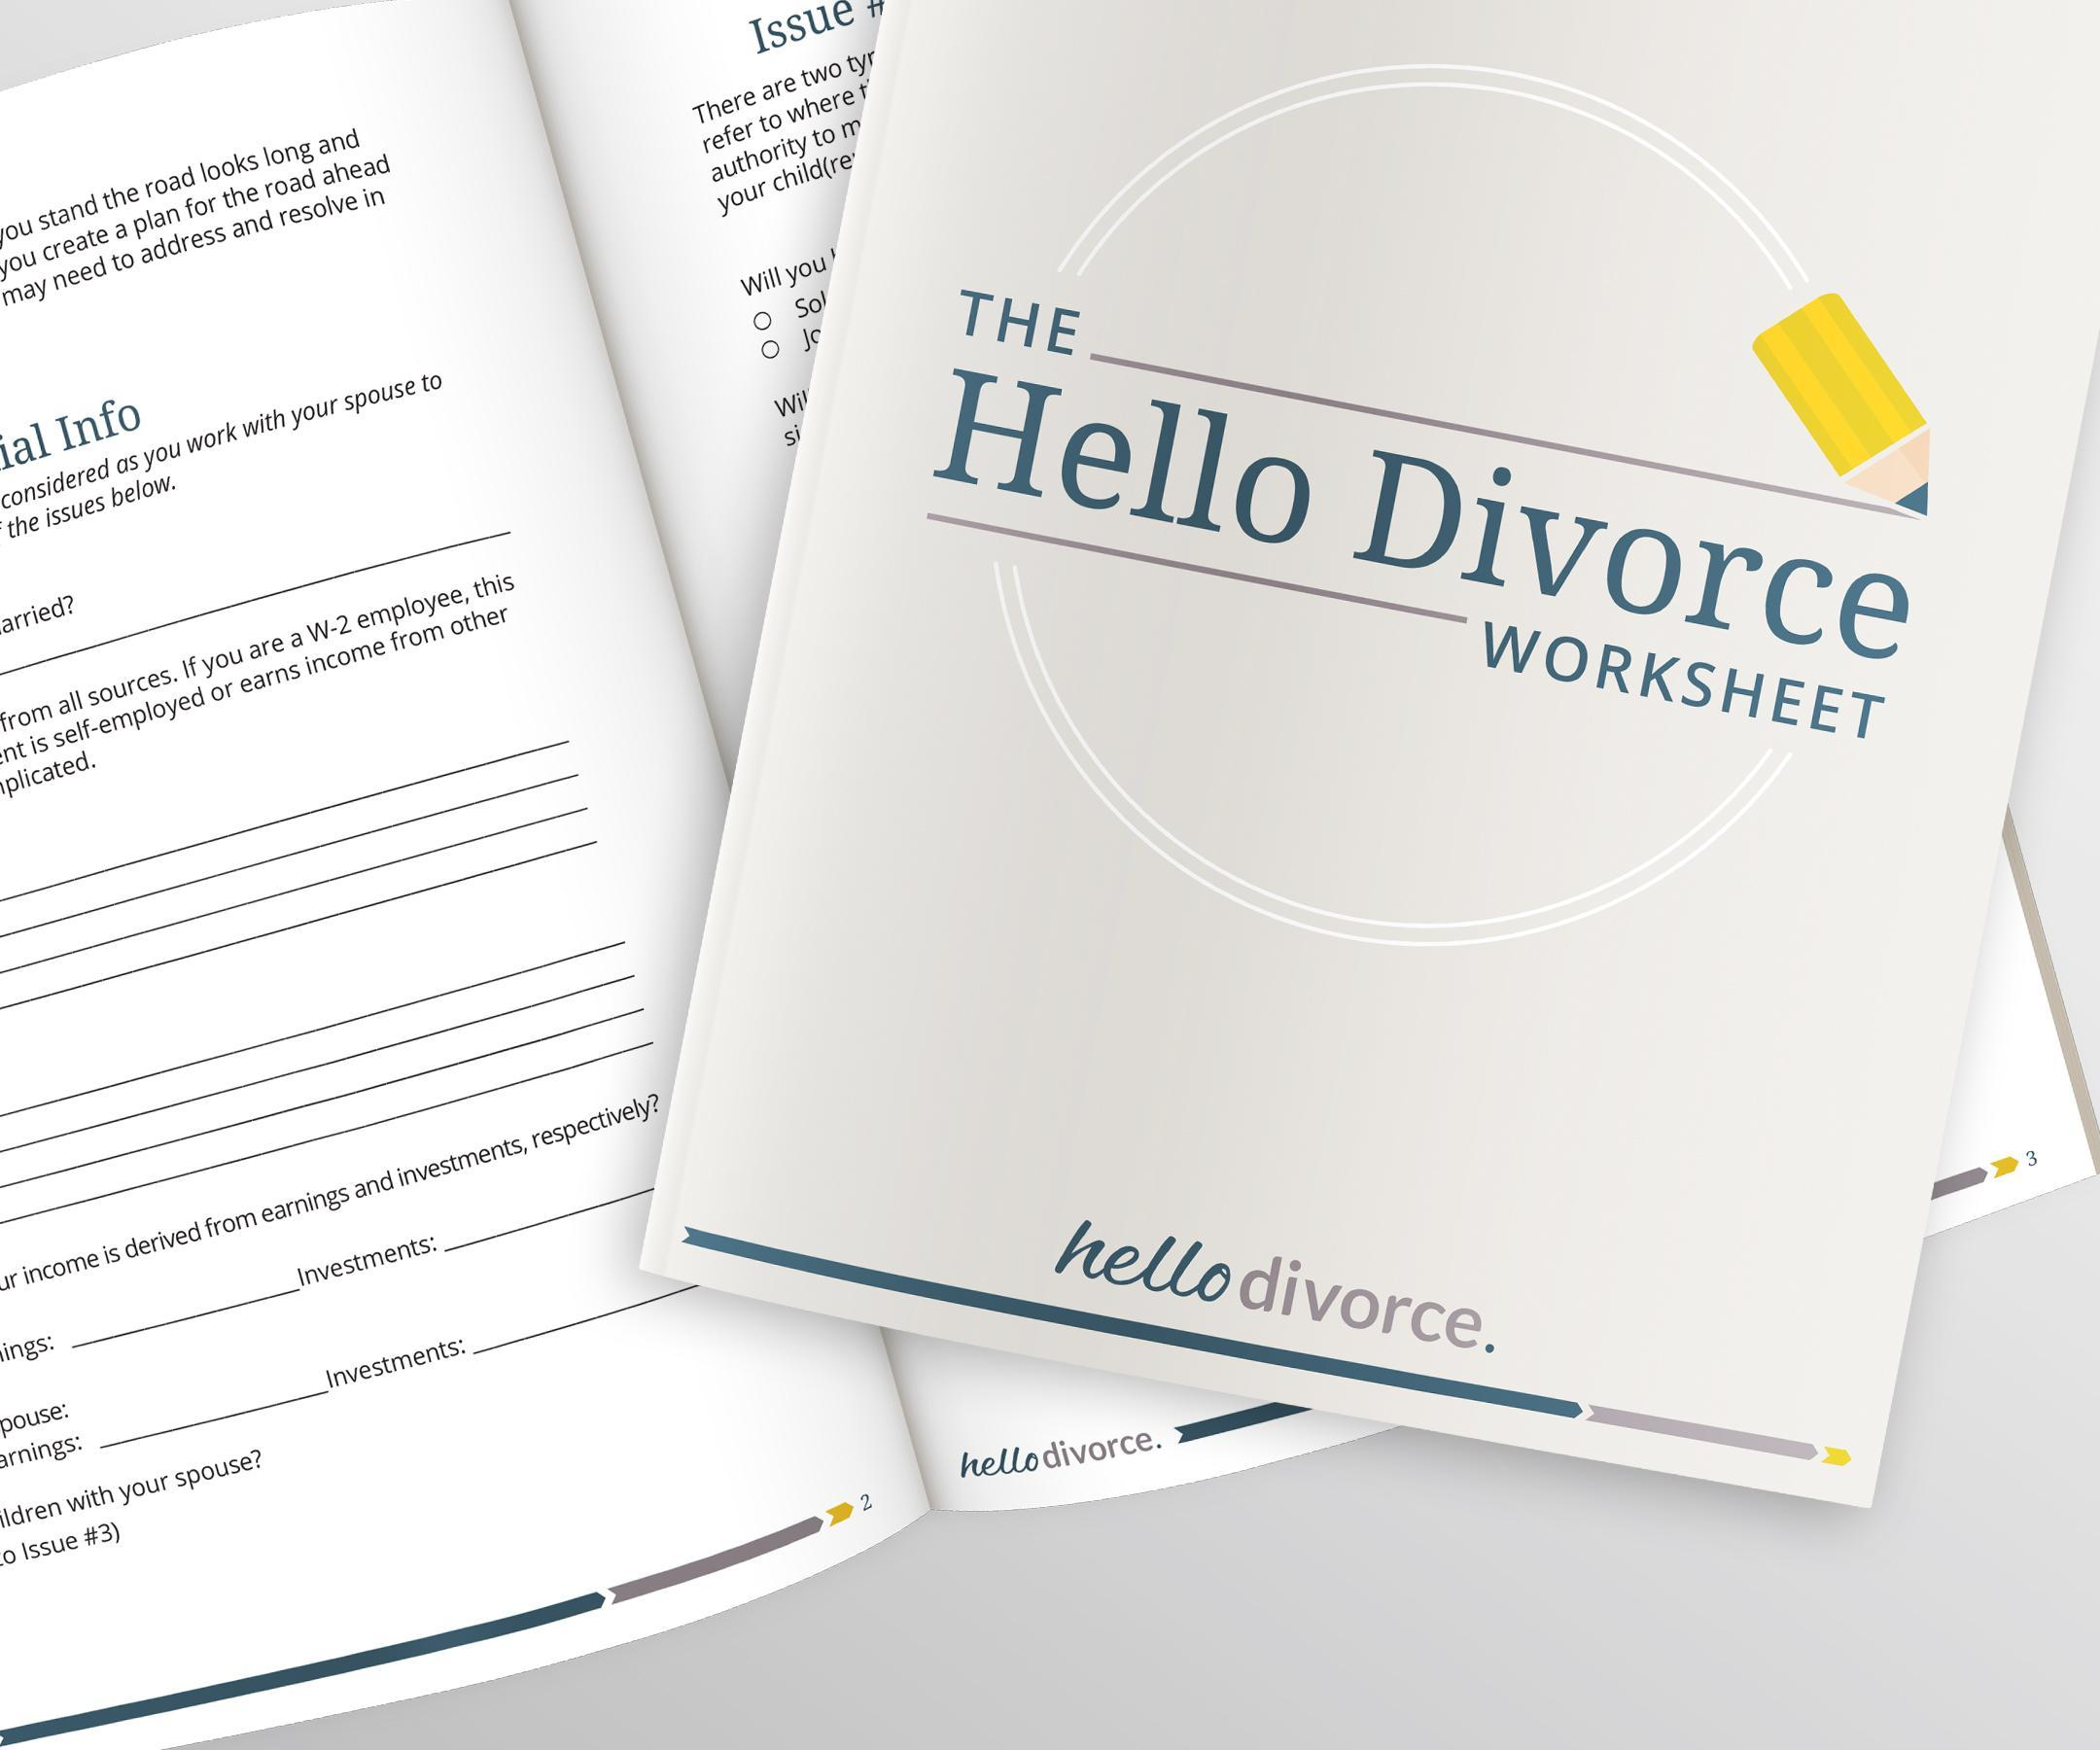 Hello Divorce print design